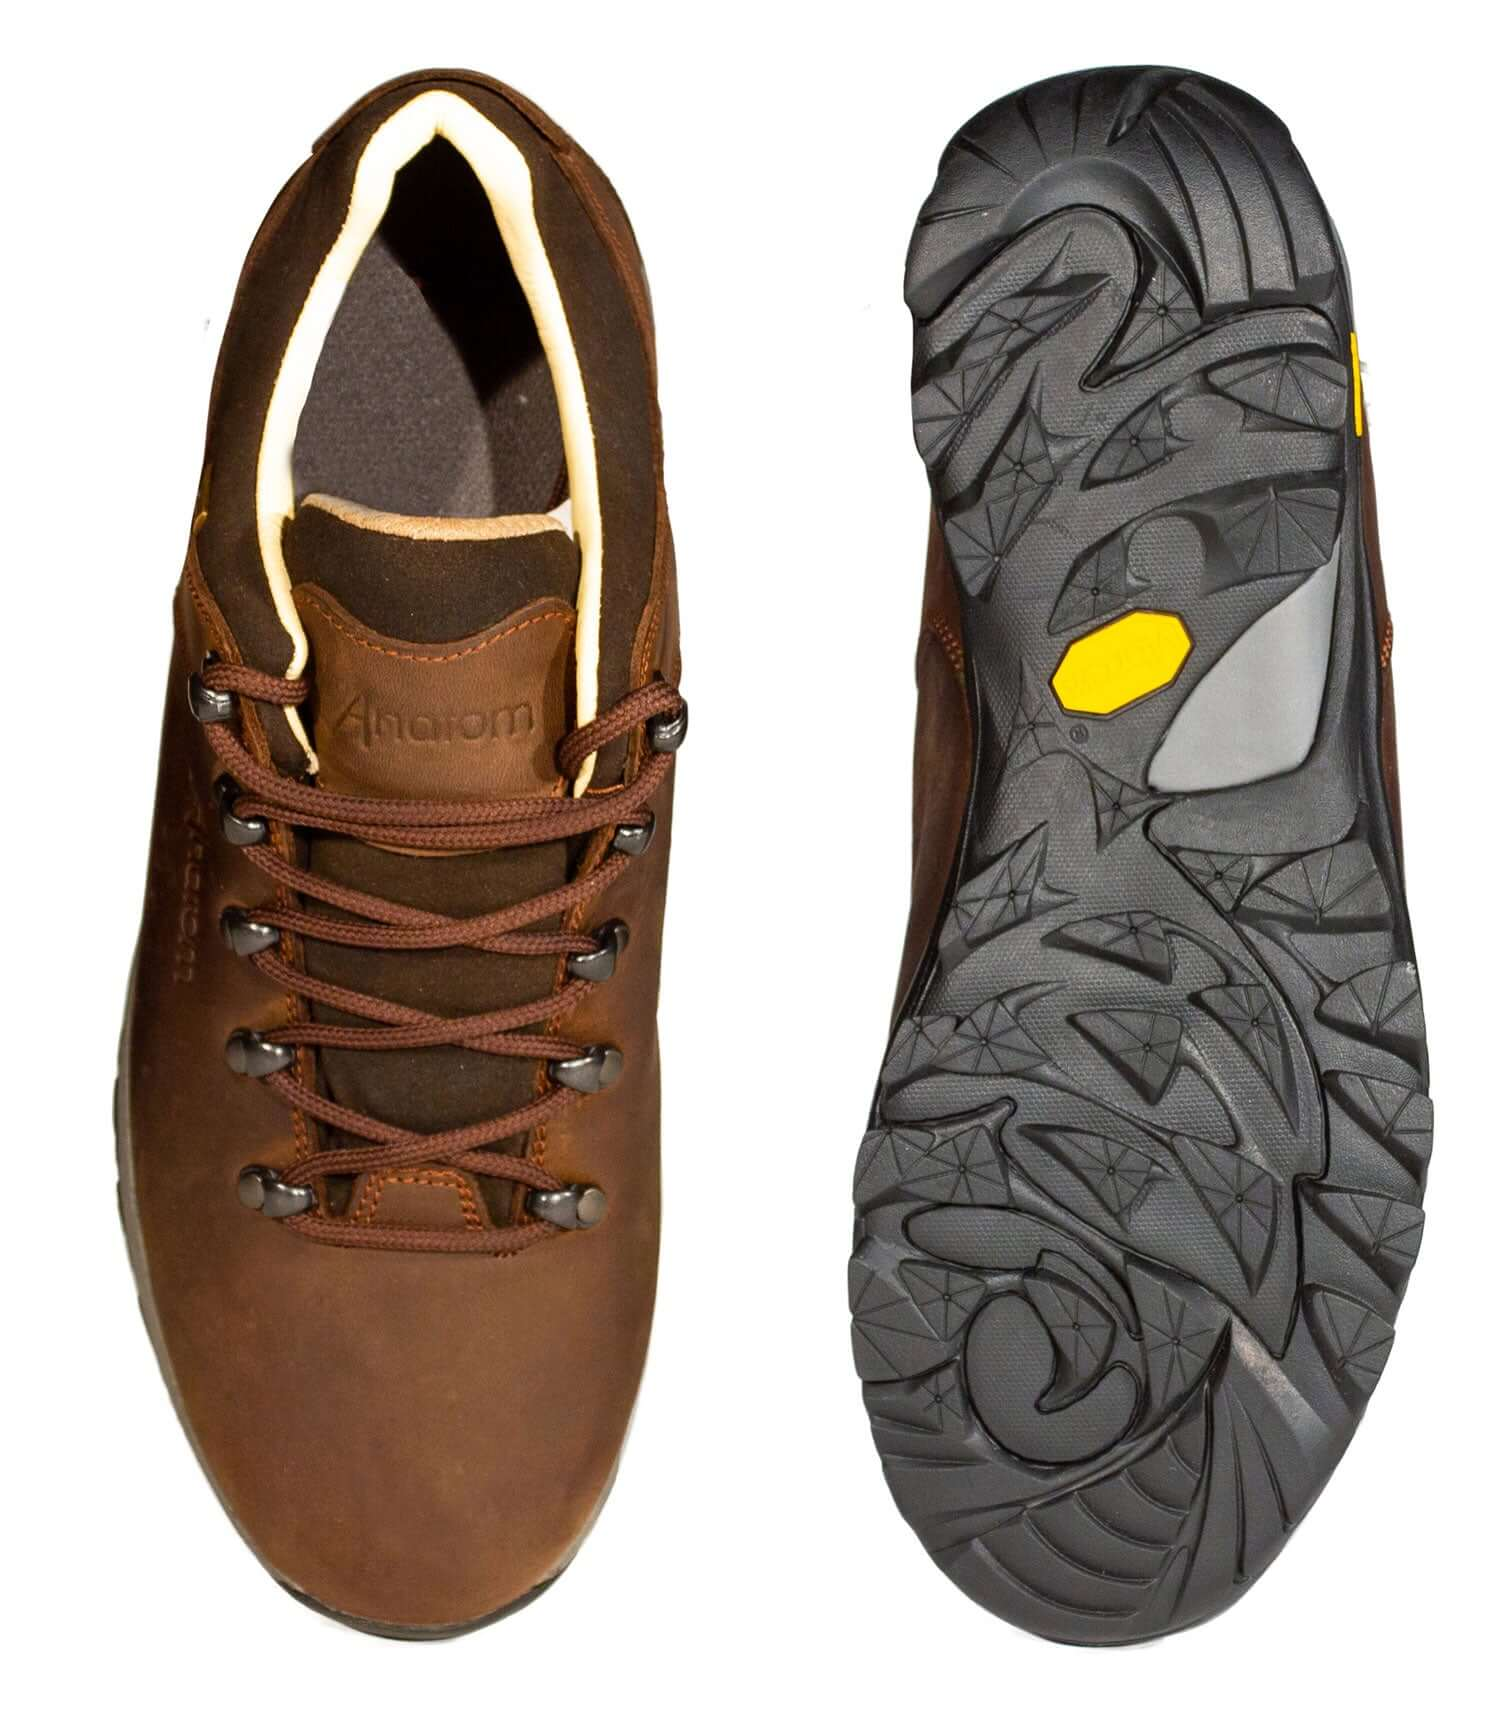 Upper and sole view of Anantom men's leather walking shoes